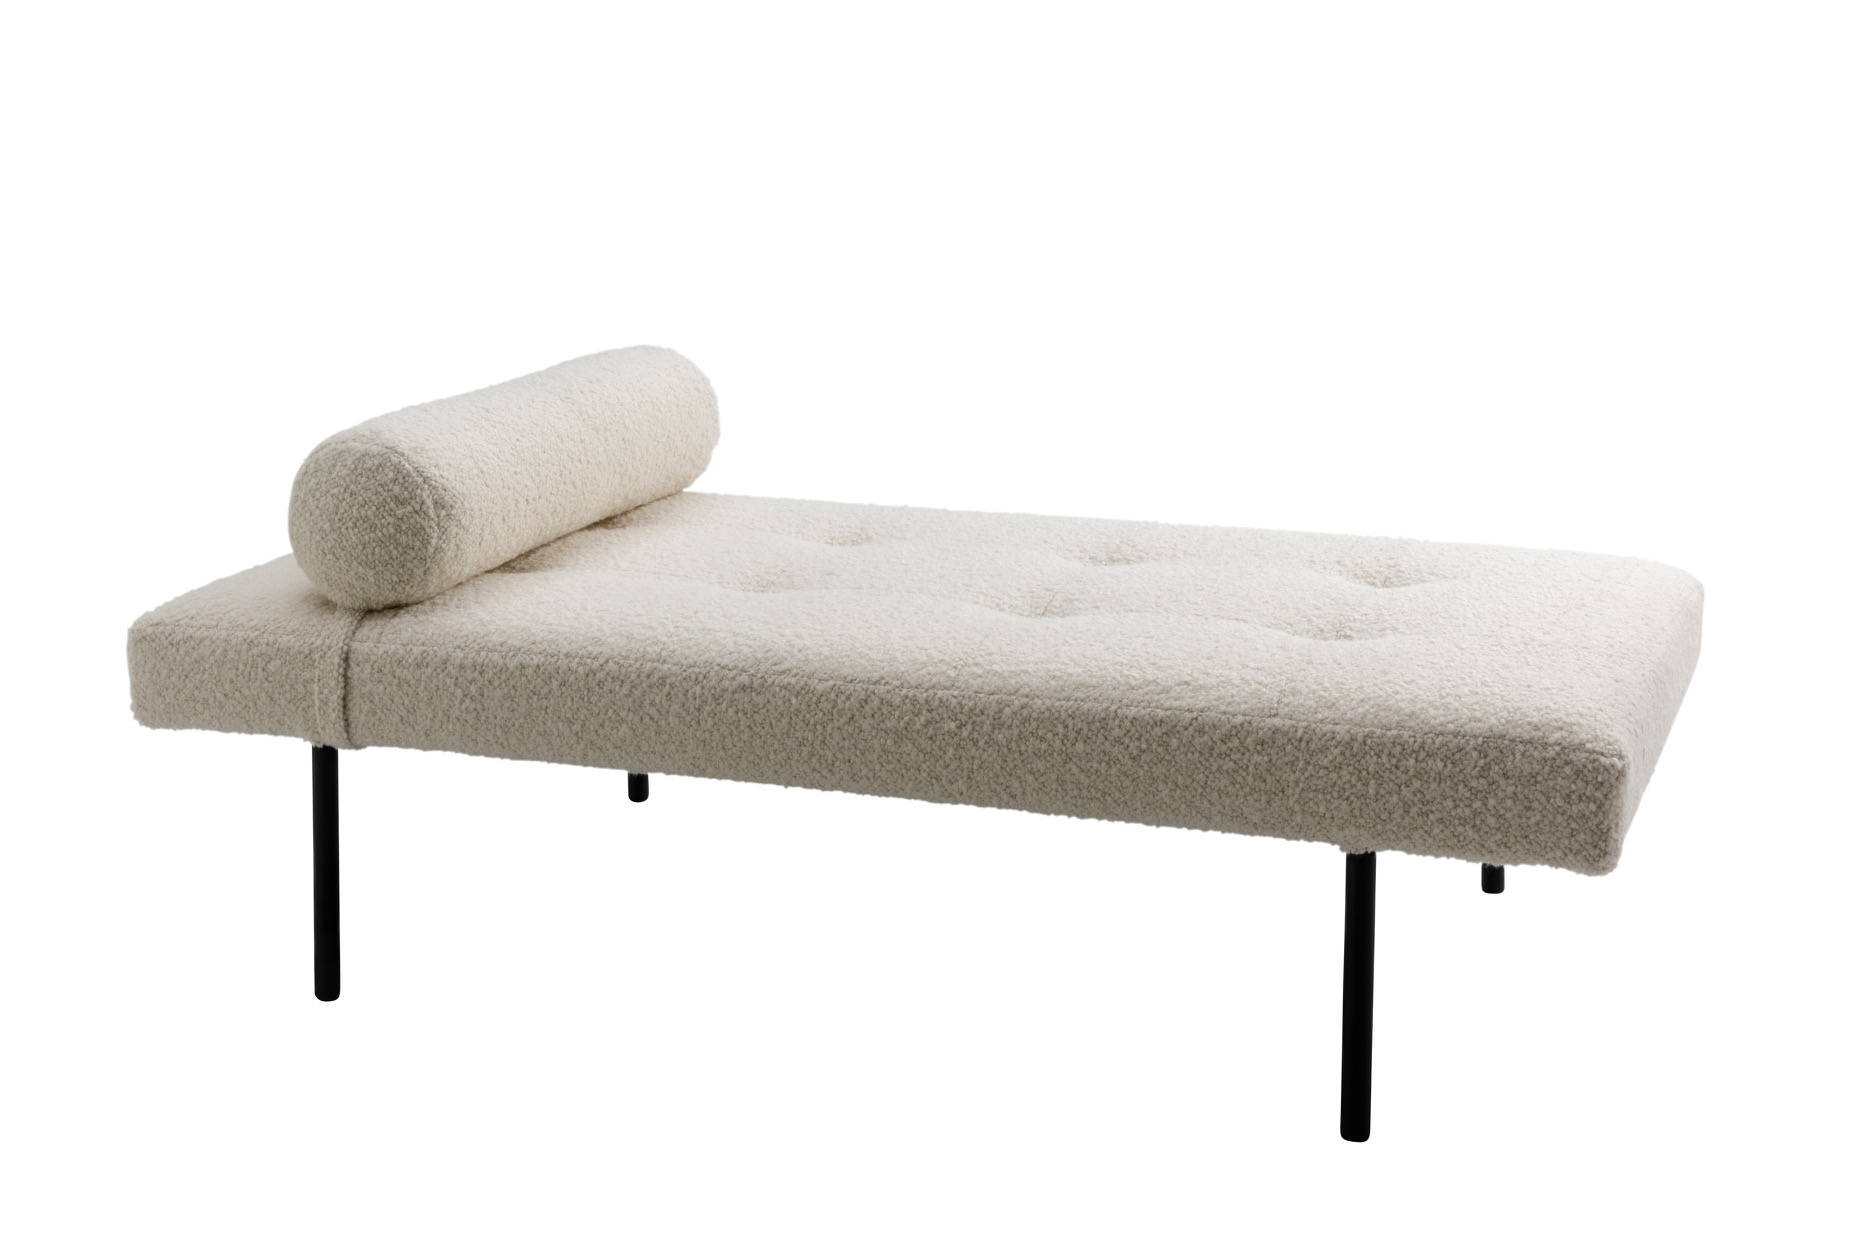 The Minimalist Emilee Daybed by Beck Wadworth x David Shaw photo